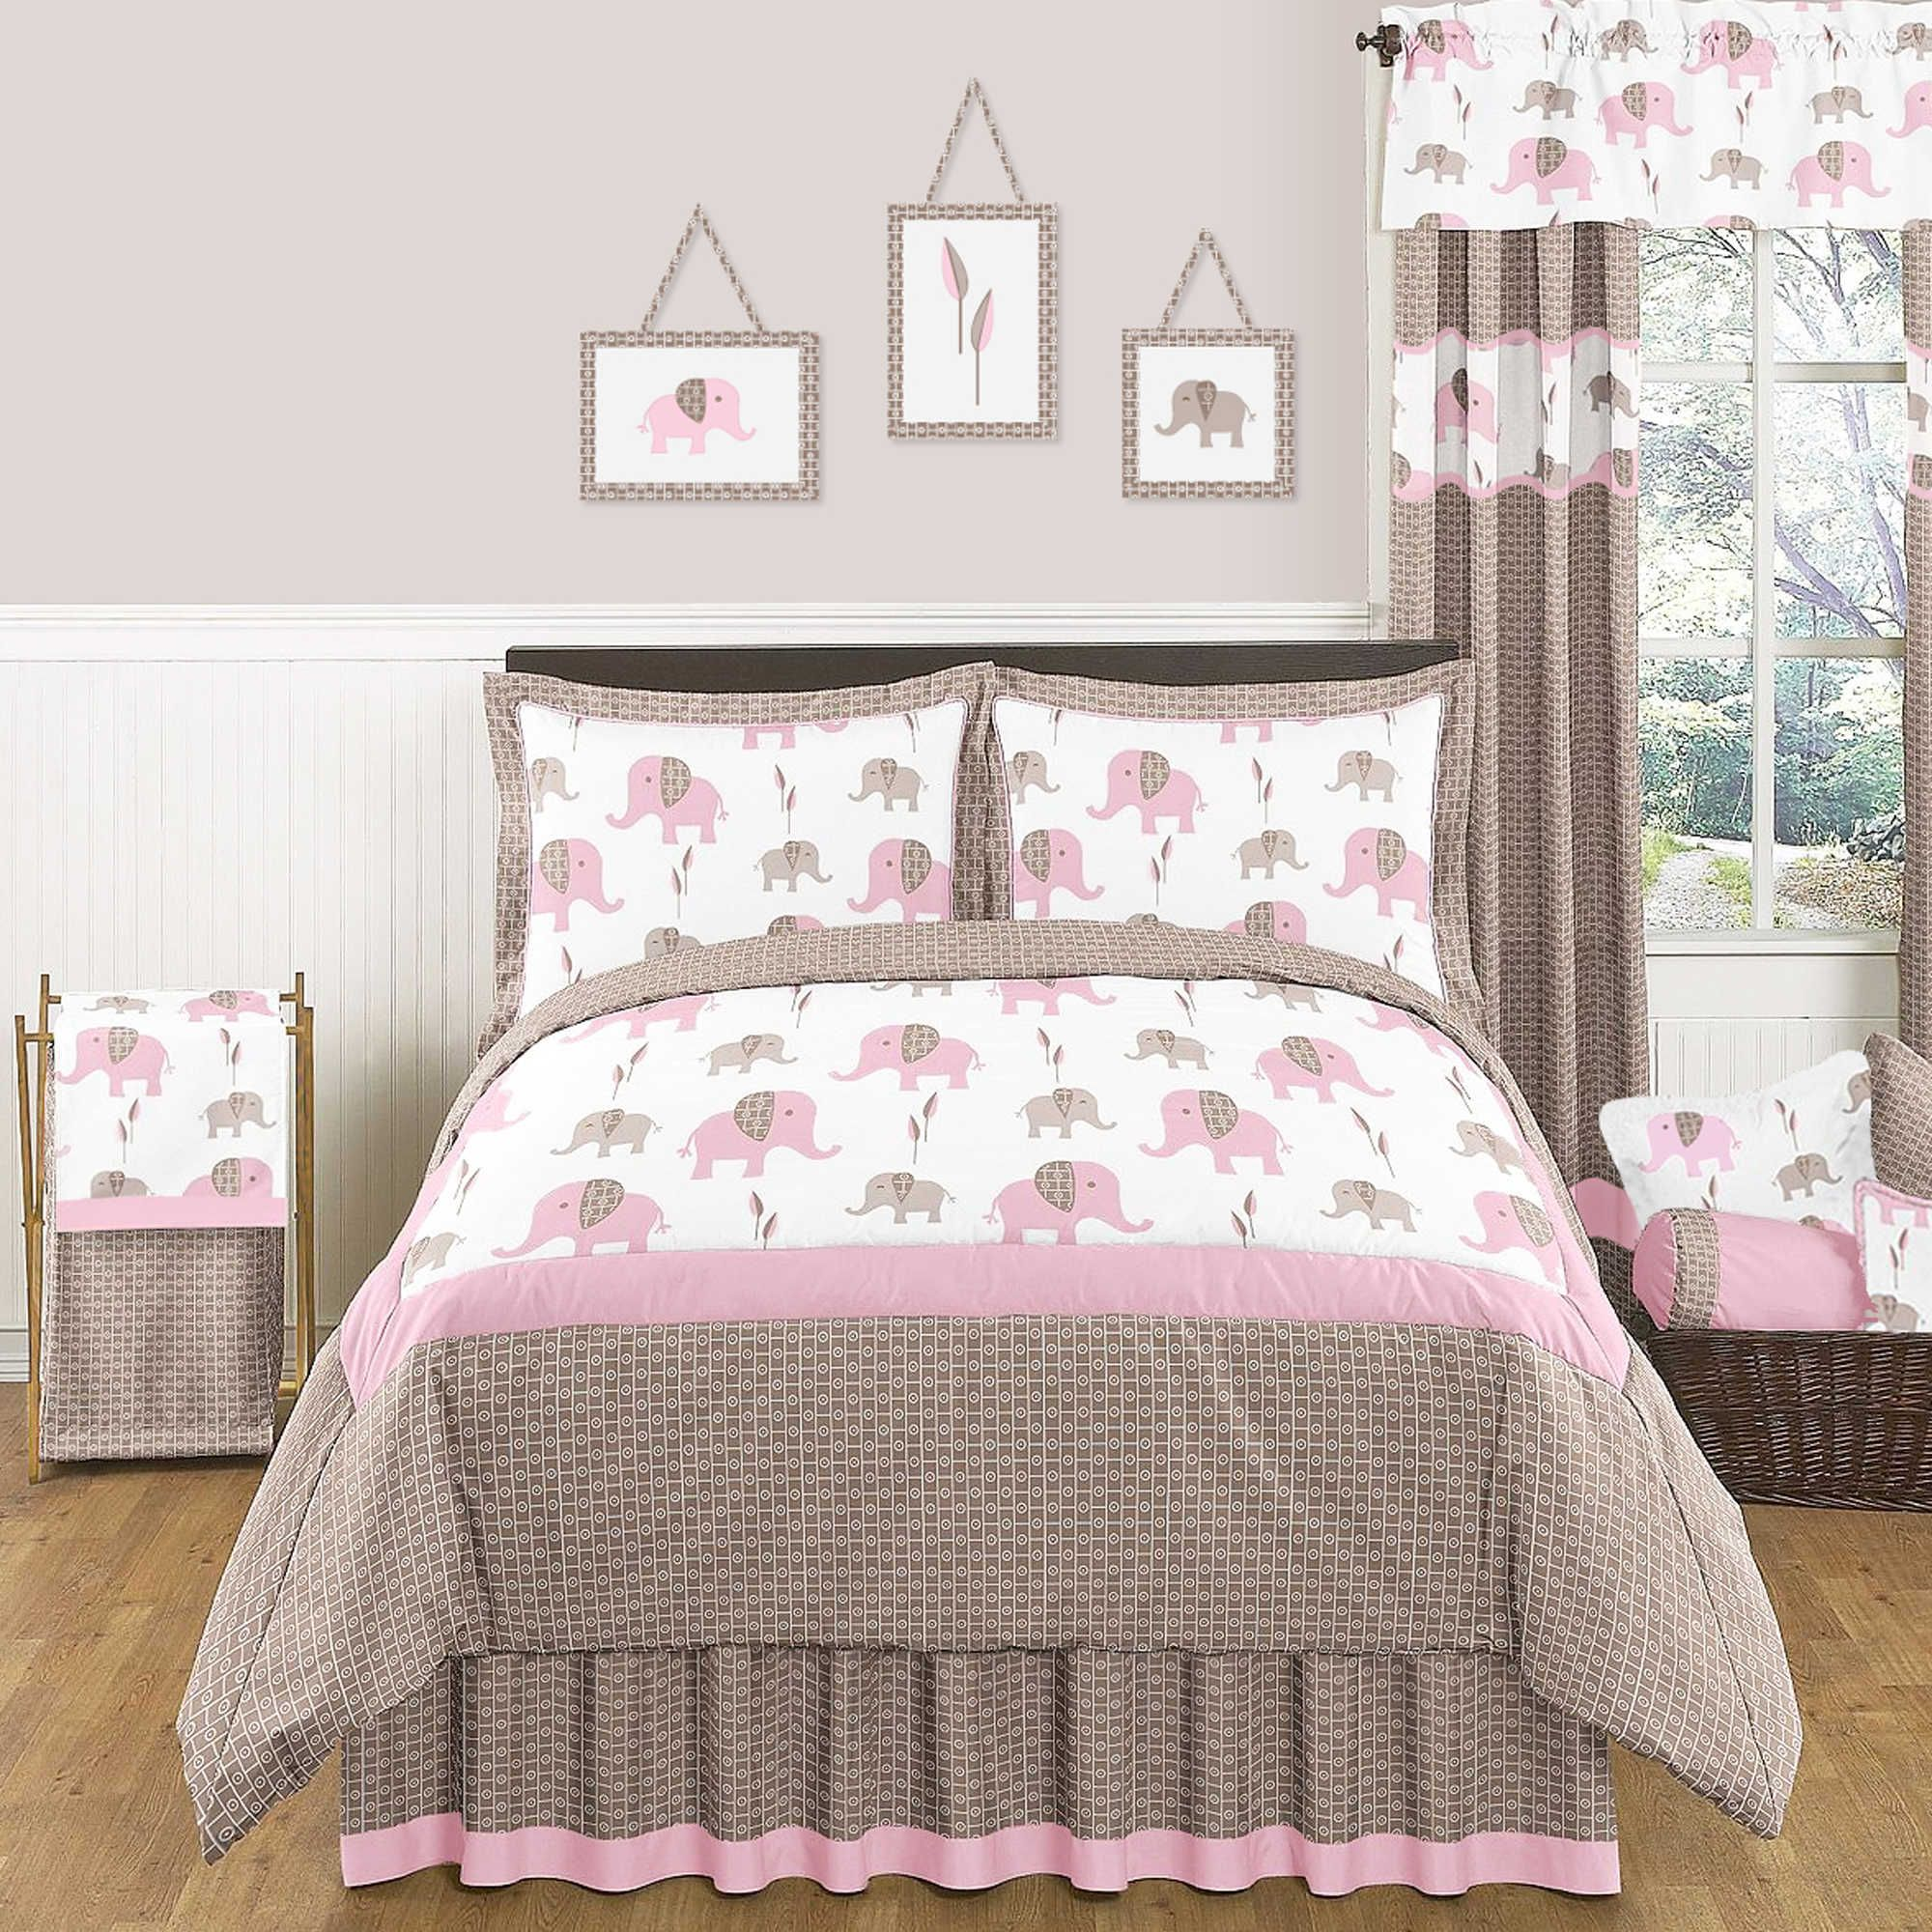 pink bedding blush comforter dusty rose decor image and of lostcoastshuttle set sets queen nursery